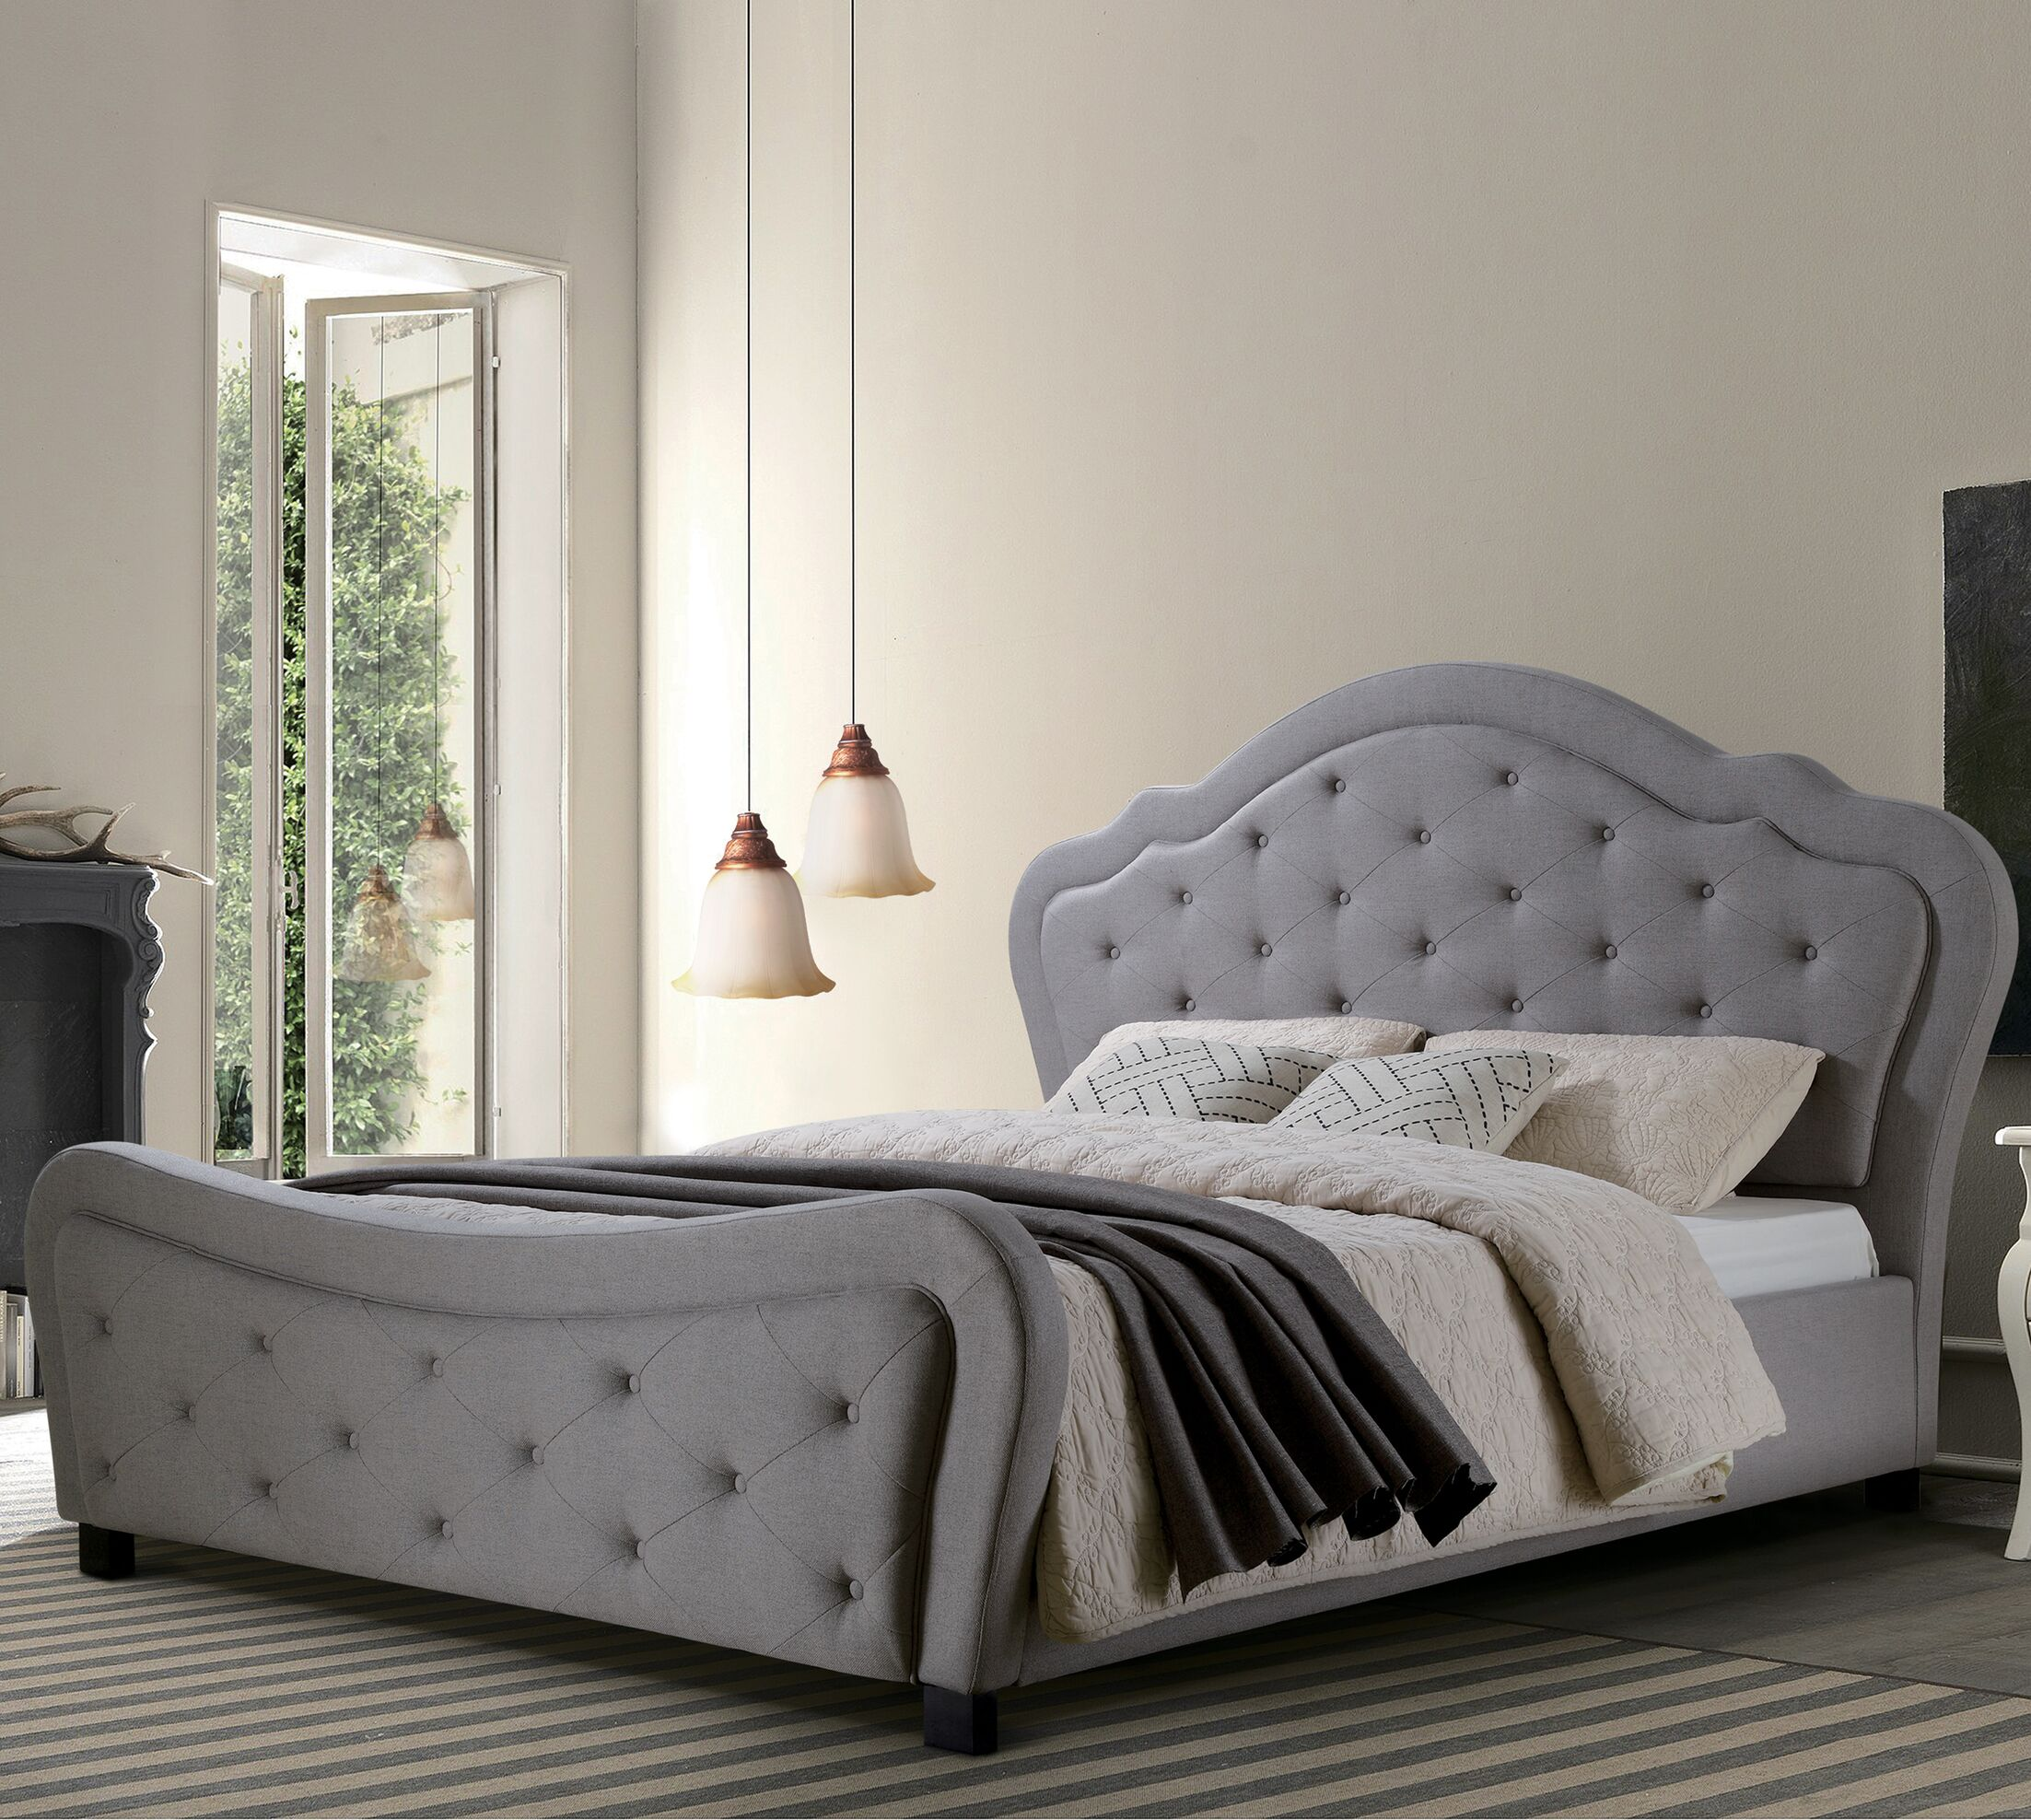 Upholstered Platform Bed Size: King, Headboard Color: Gray